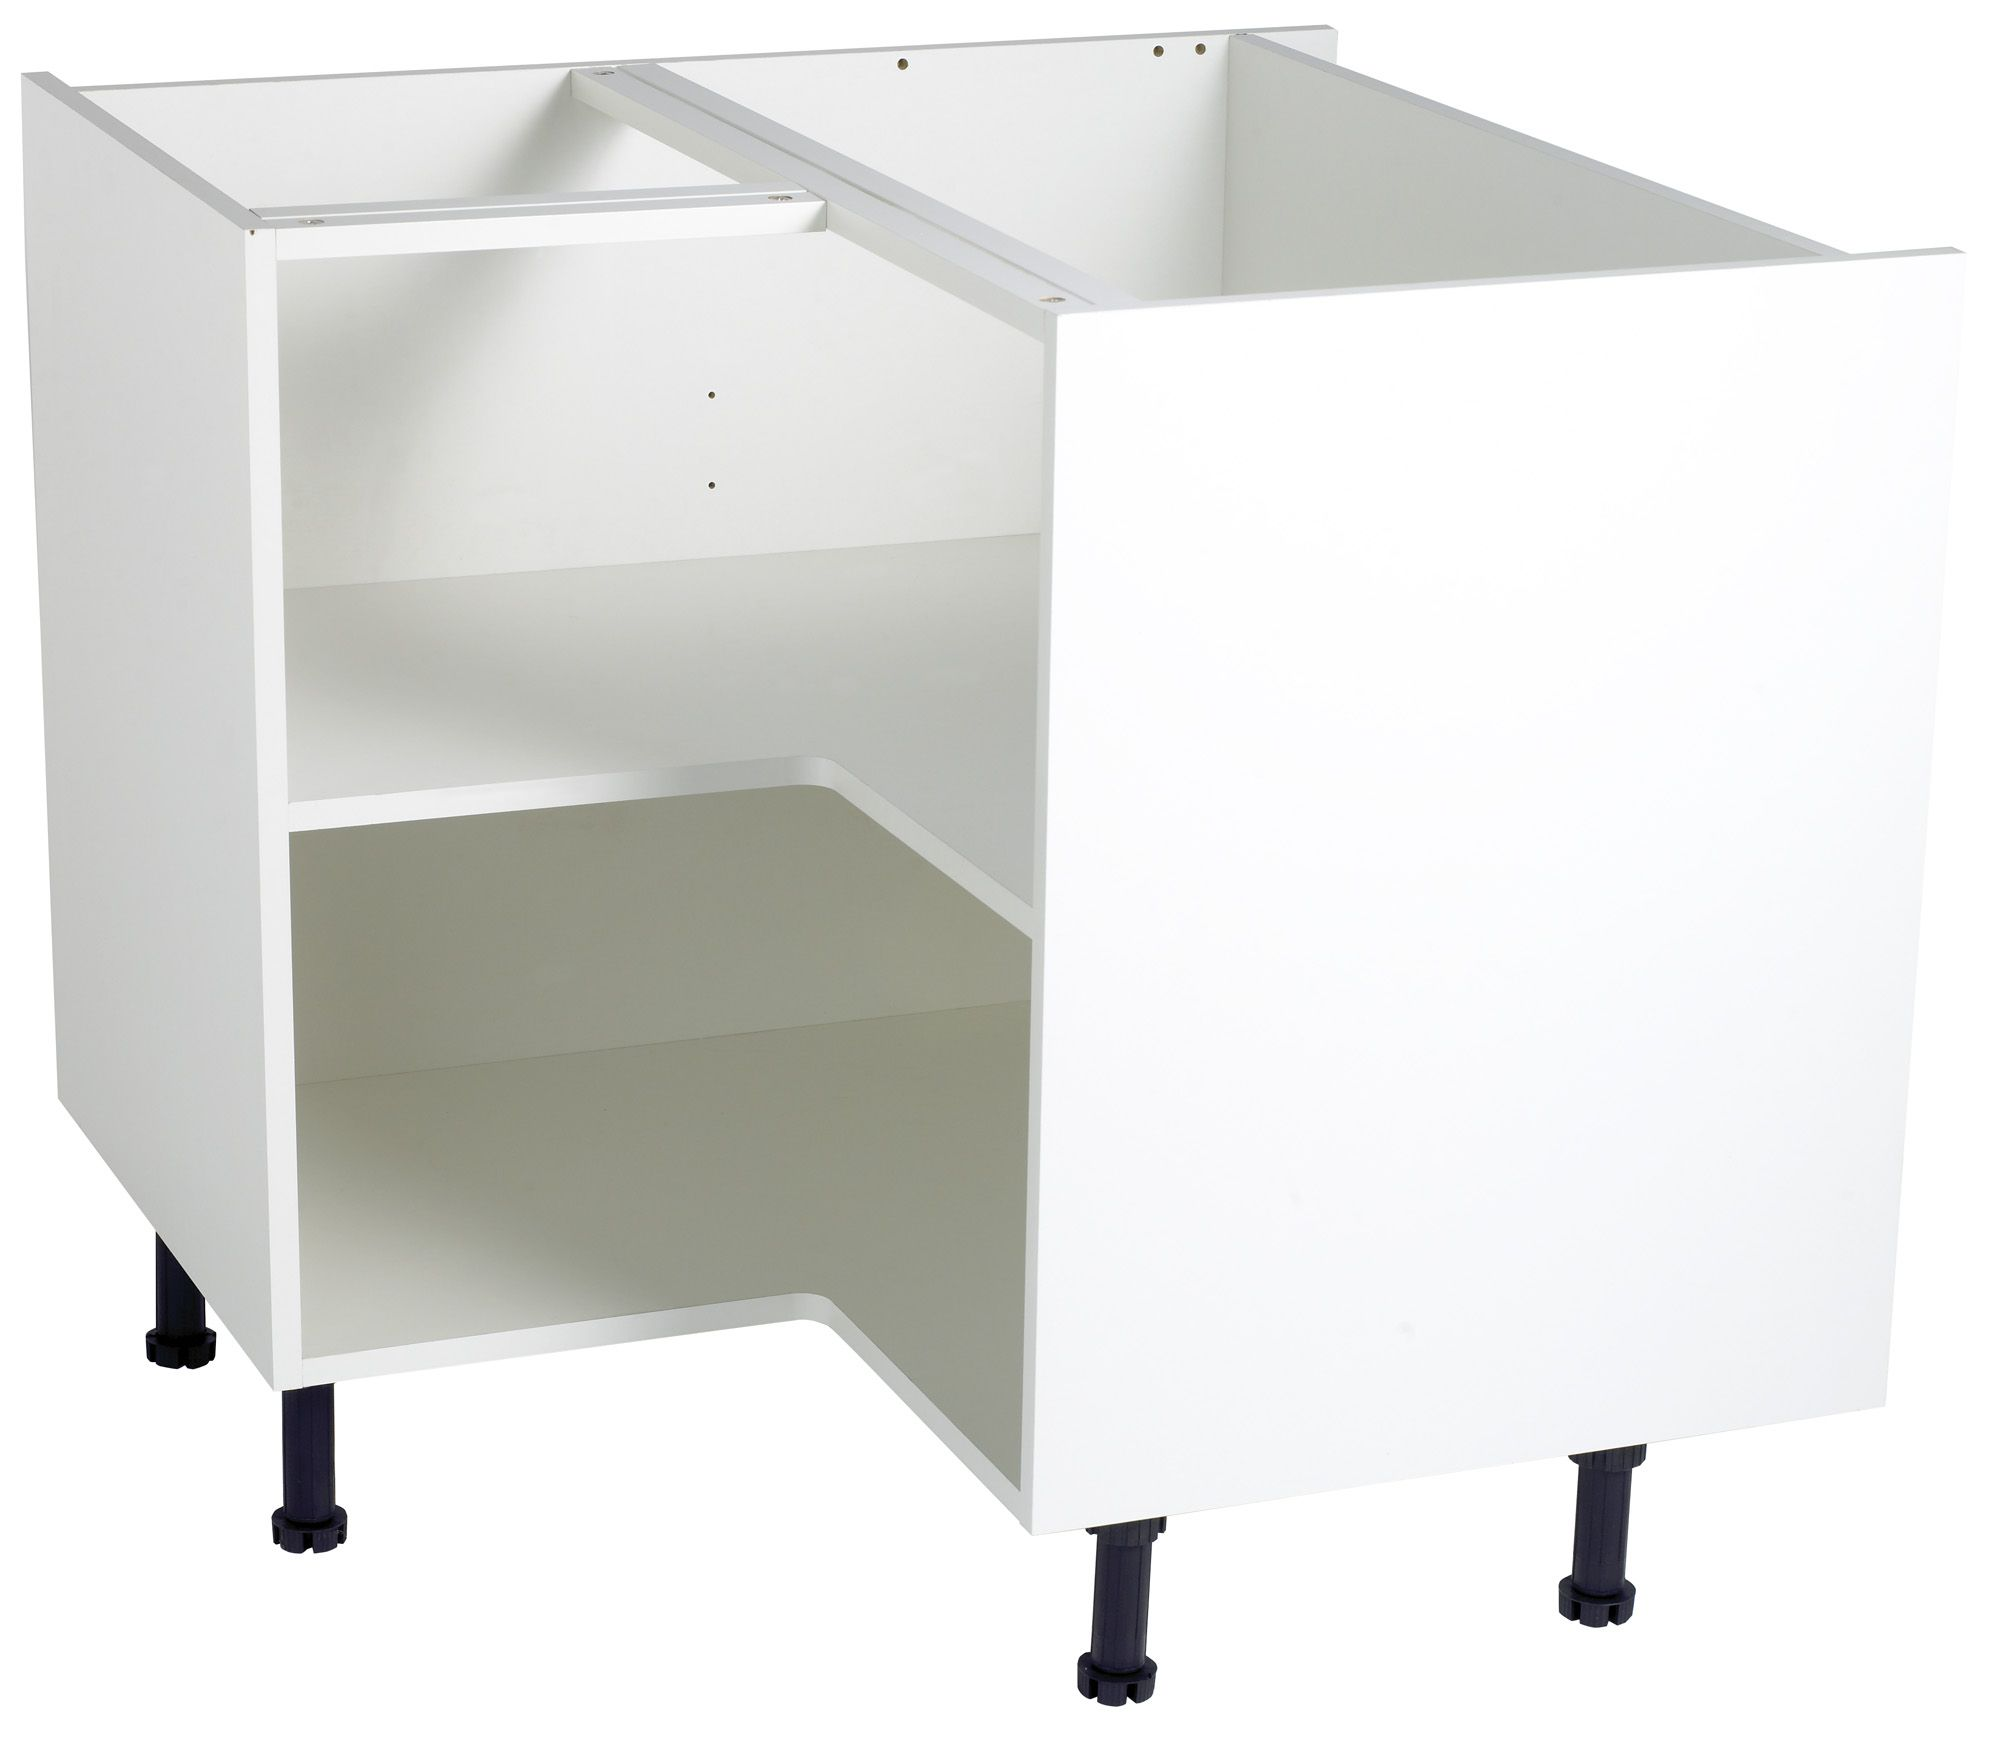 Cooke lewis white internal corner base unit carcass w for Carcass kitchen cabinets